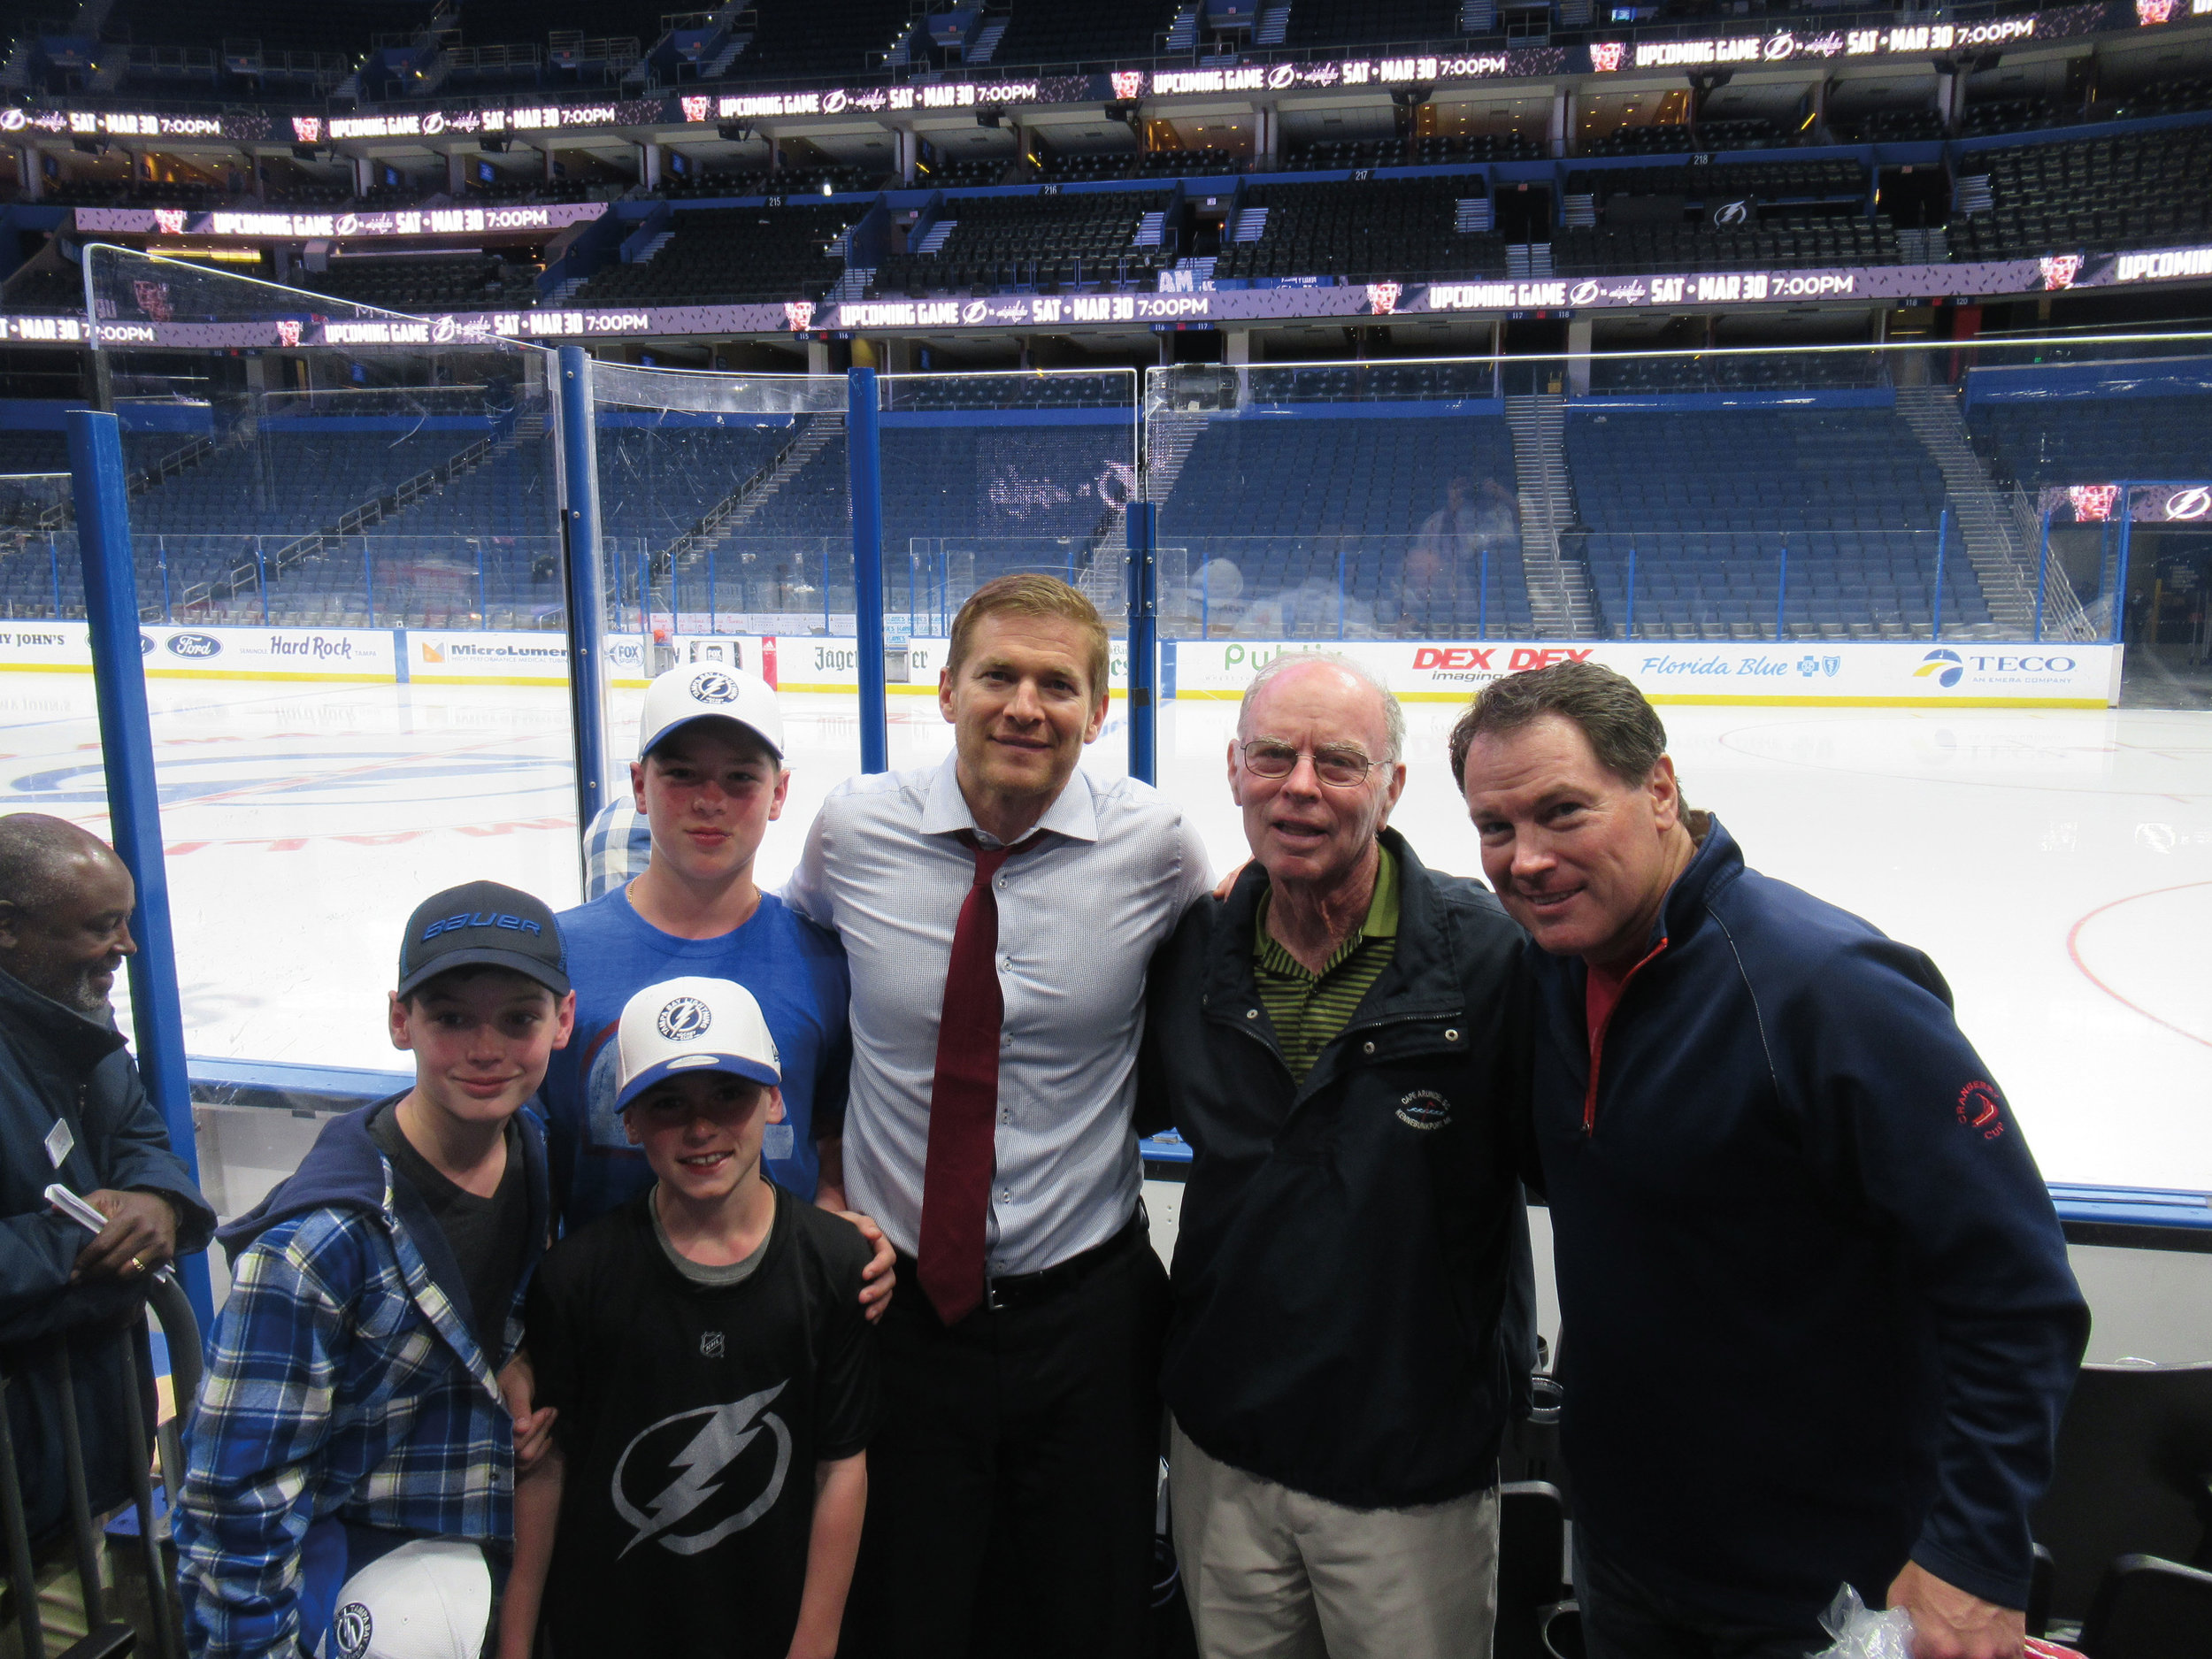 Brendan, Drew, Will, Billy '86, and Bill Matthews '61 with Jeff Halpern '94 at a Boston Bruins vs. Tampa Bay Lightning hockey game.